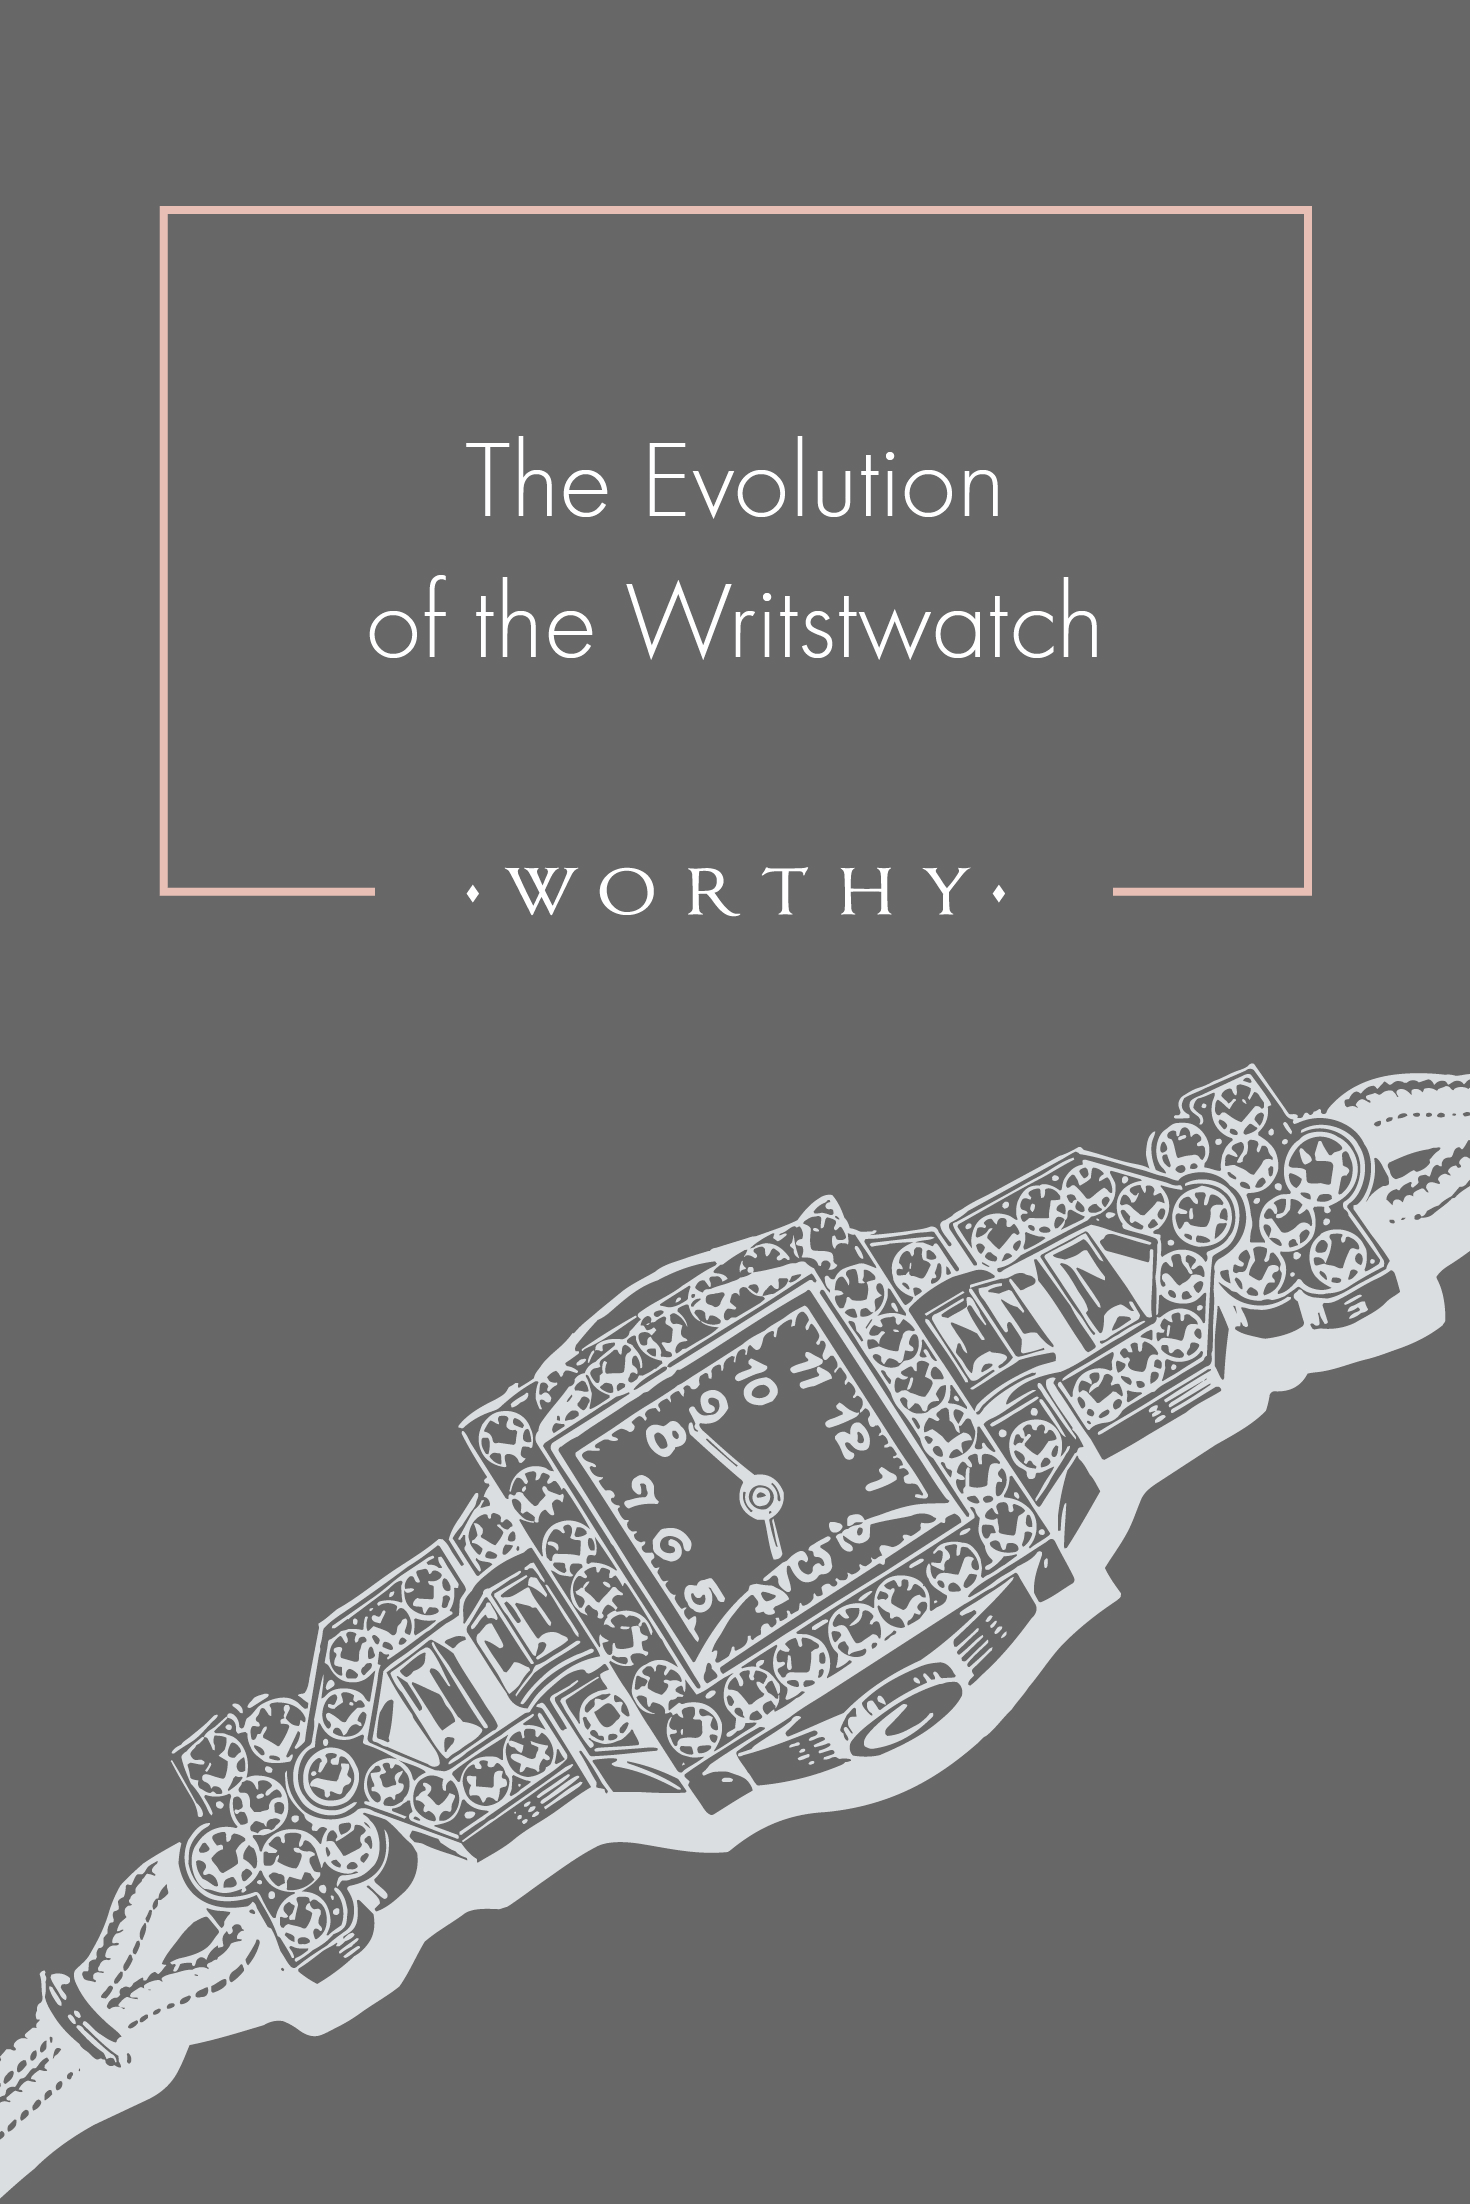 From its origins as a ladies' watch in the 16th century to today's smartwatches: learn the history and evolution of the wristwatch!